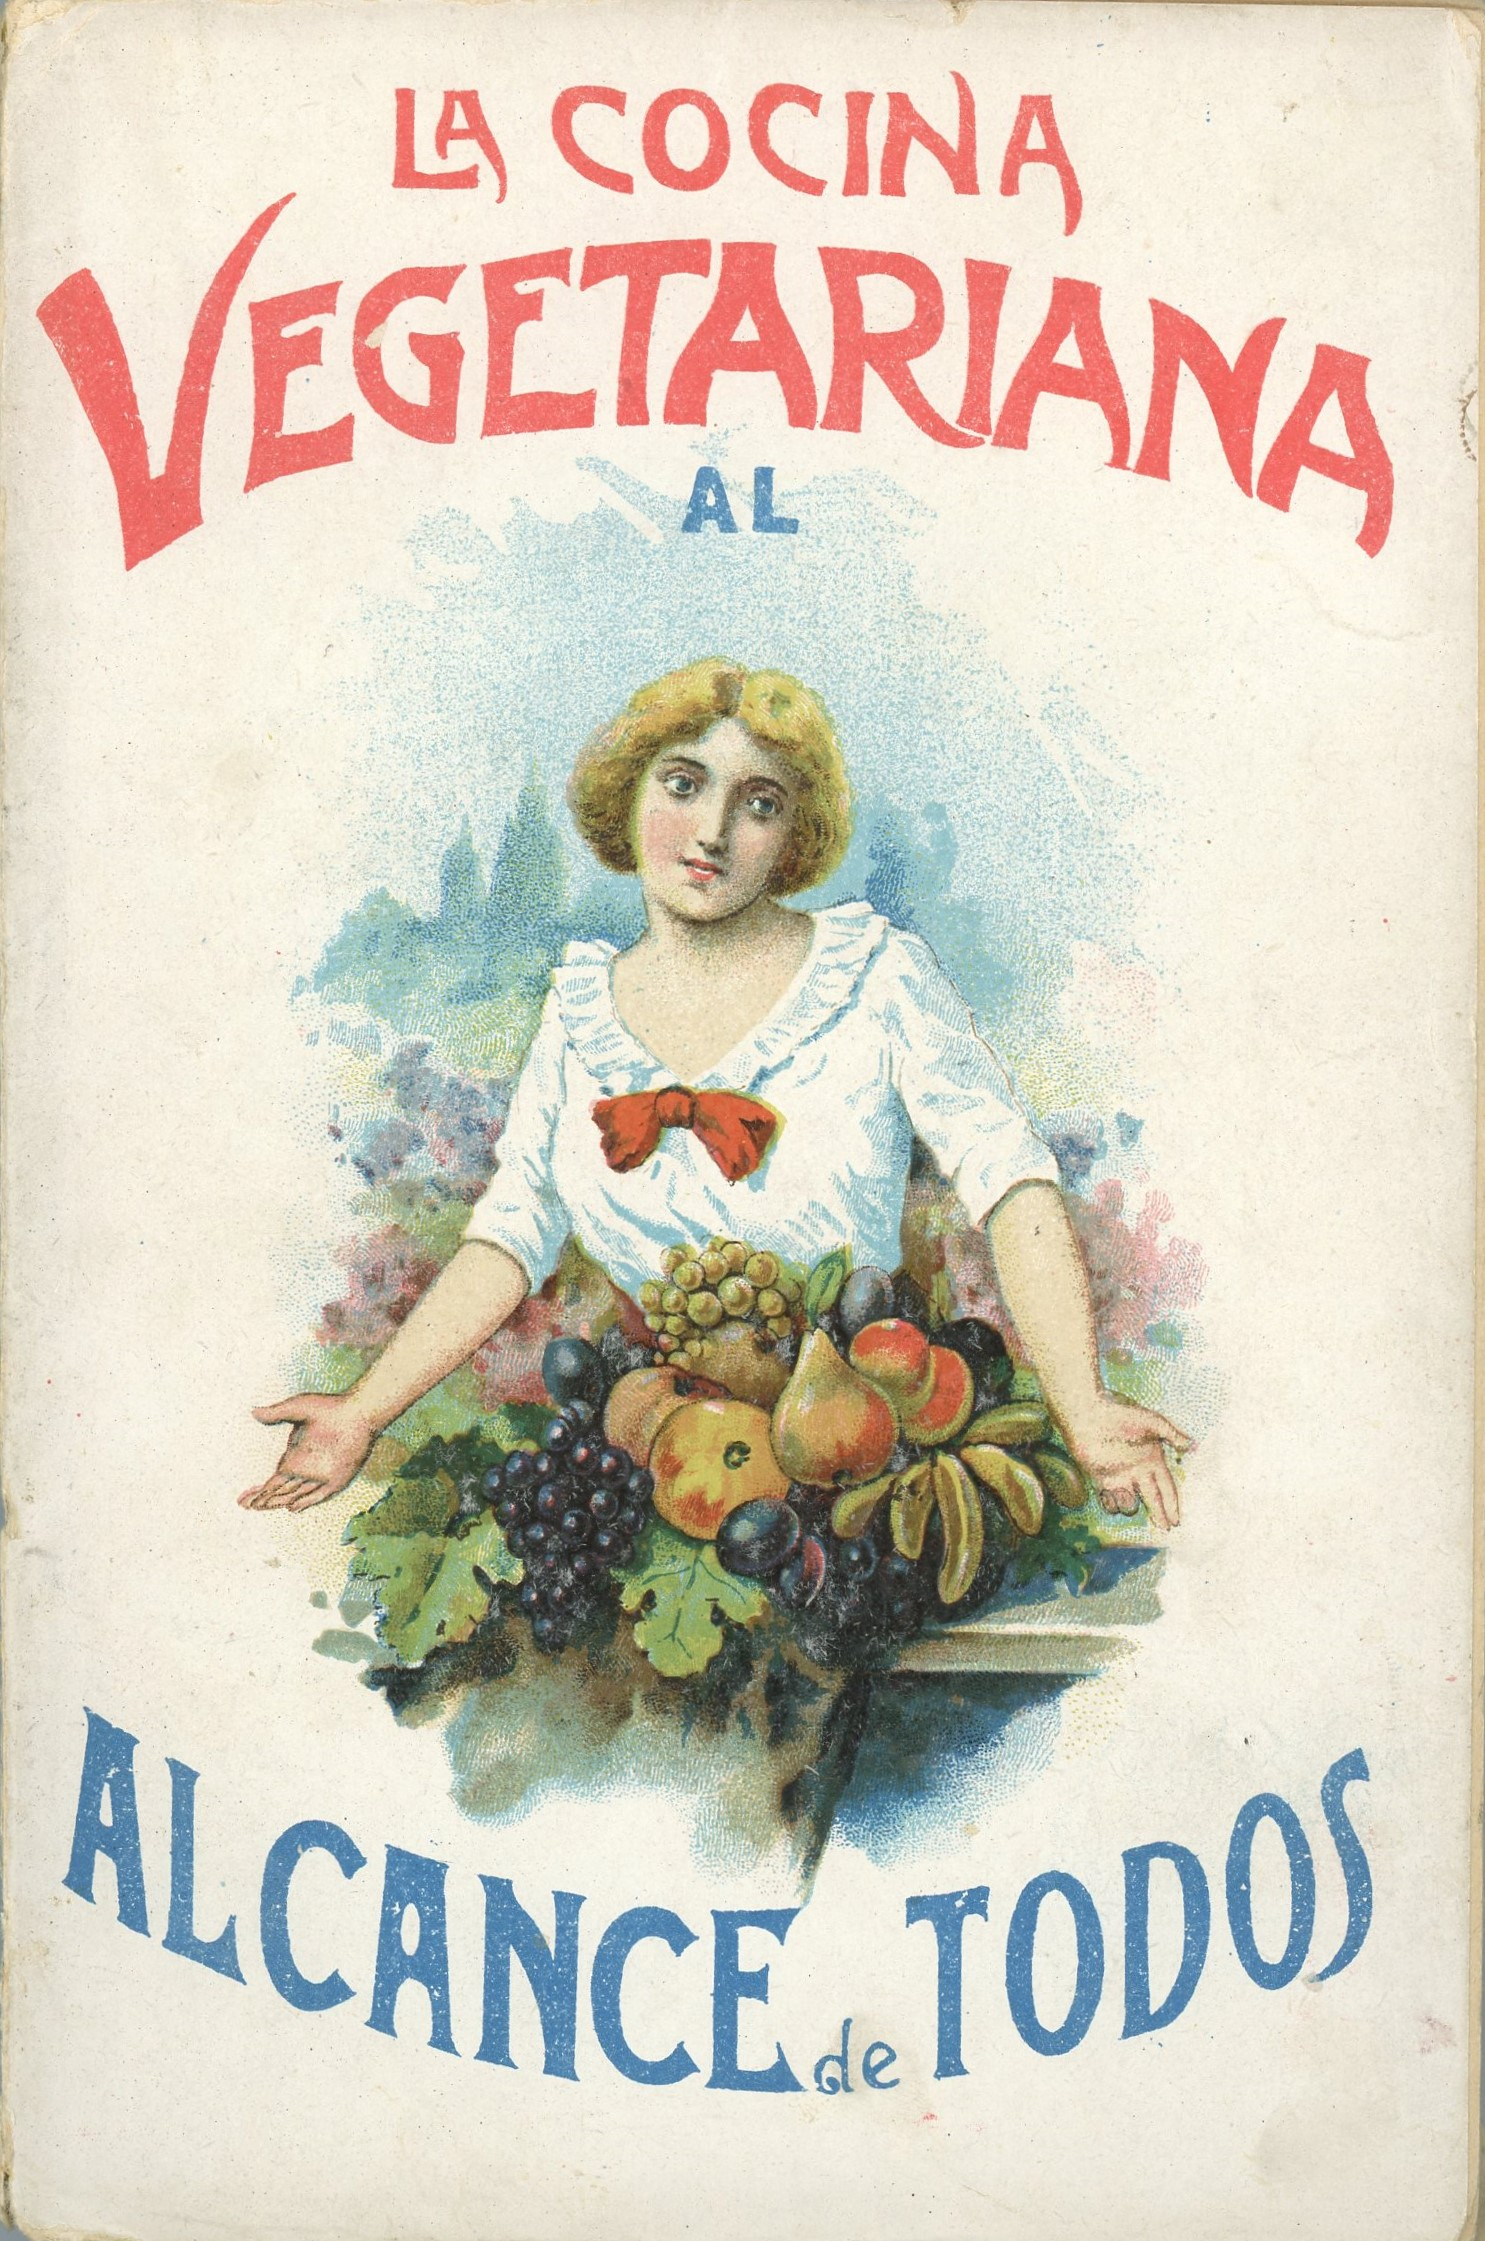 Cover for La cocina vegetariana al alcance de todos featuring a woman with fruits and vegetables on the table in front of her.